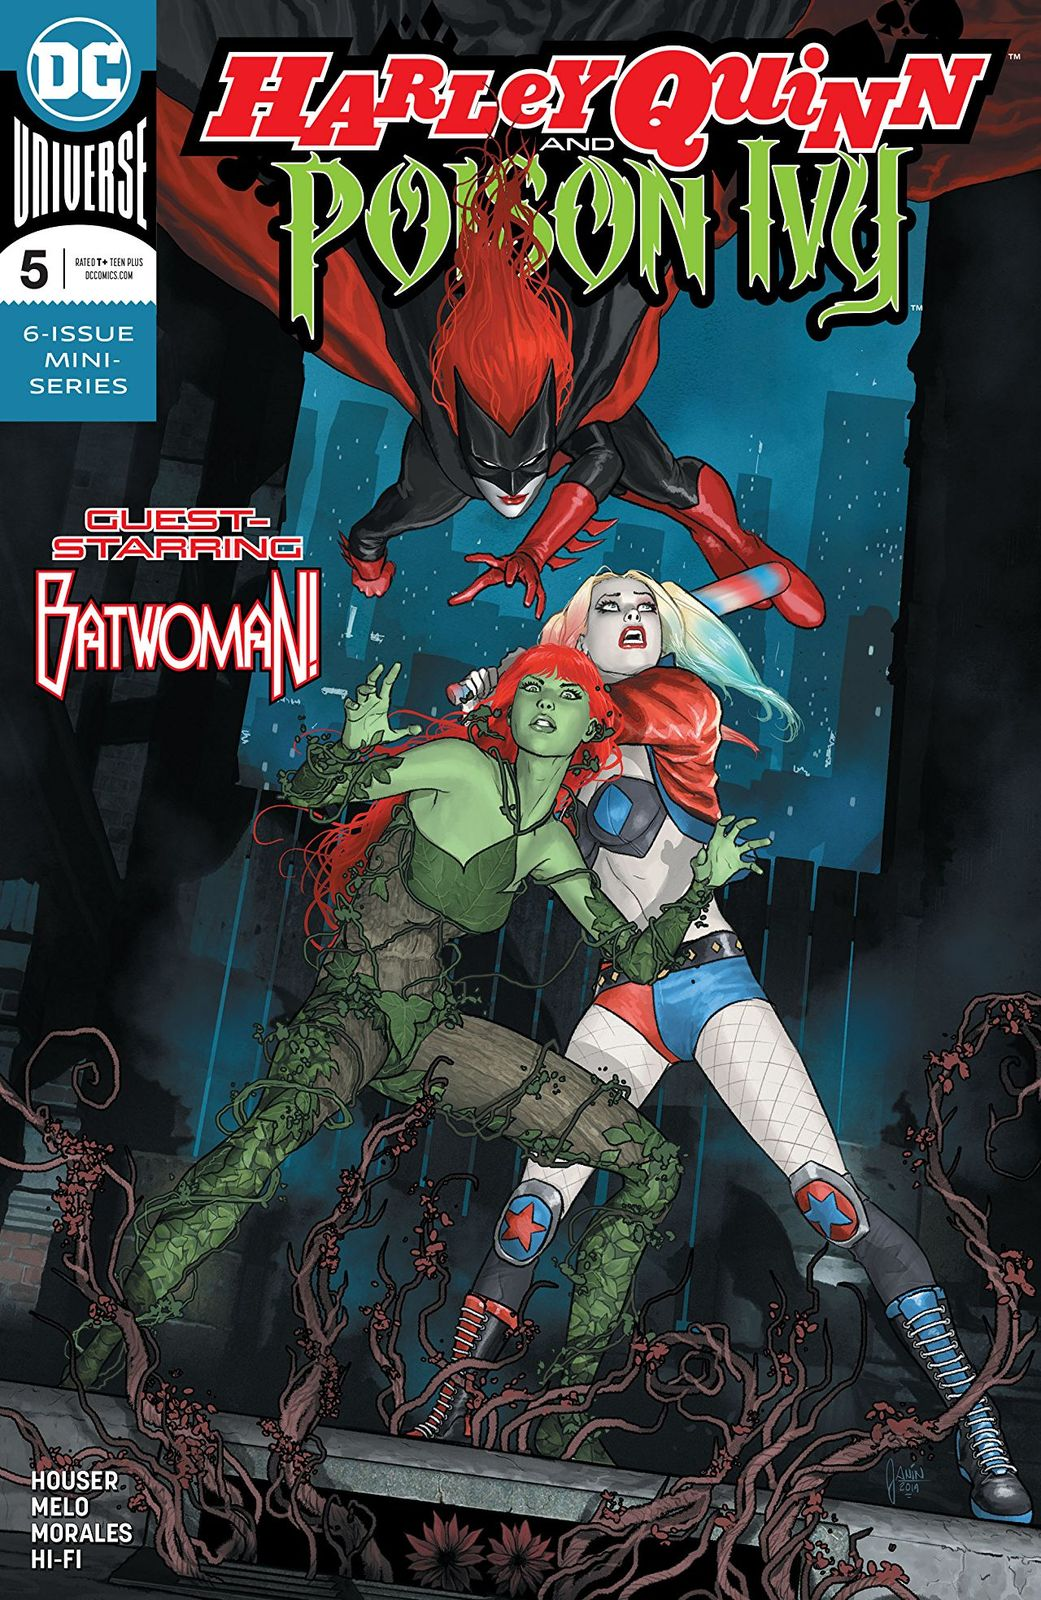 Harley Quinn & Poison Ivy - #5 (Cover A) by Jody Houser image